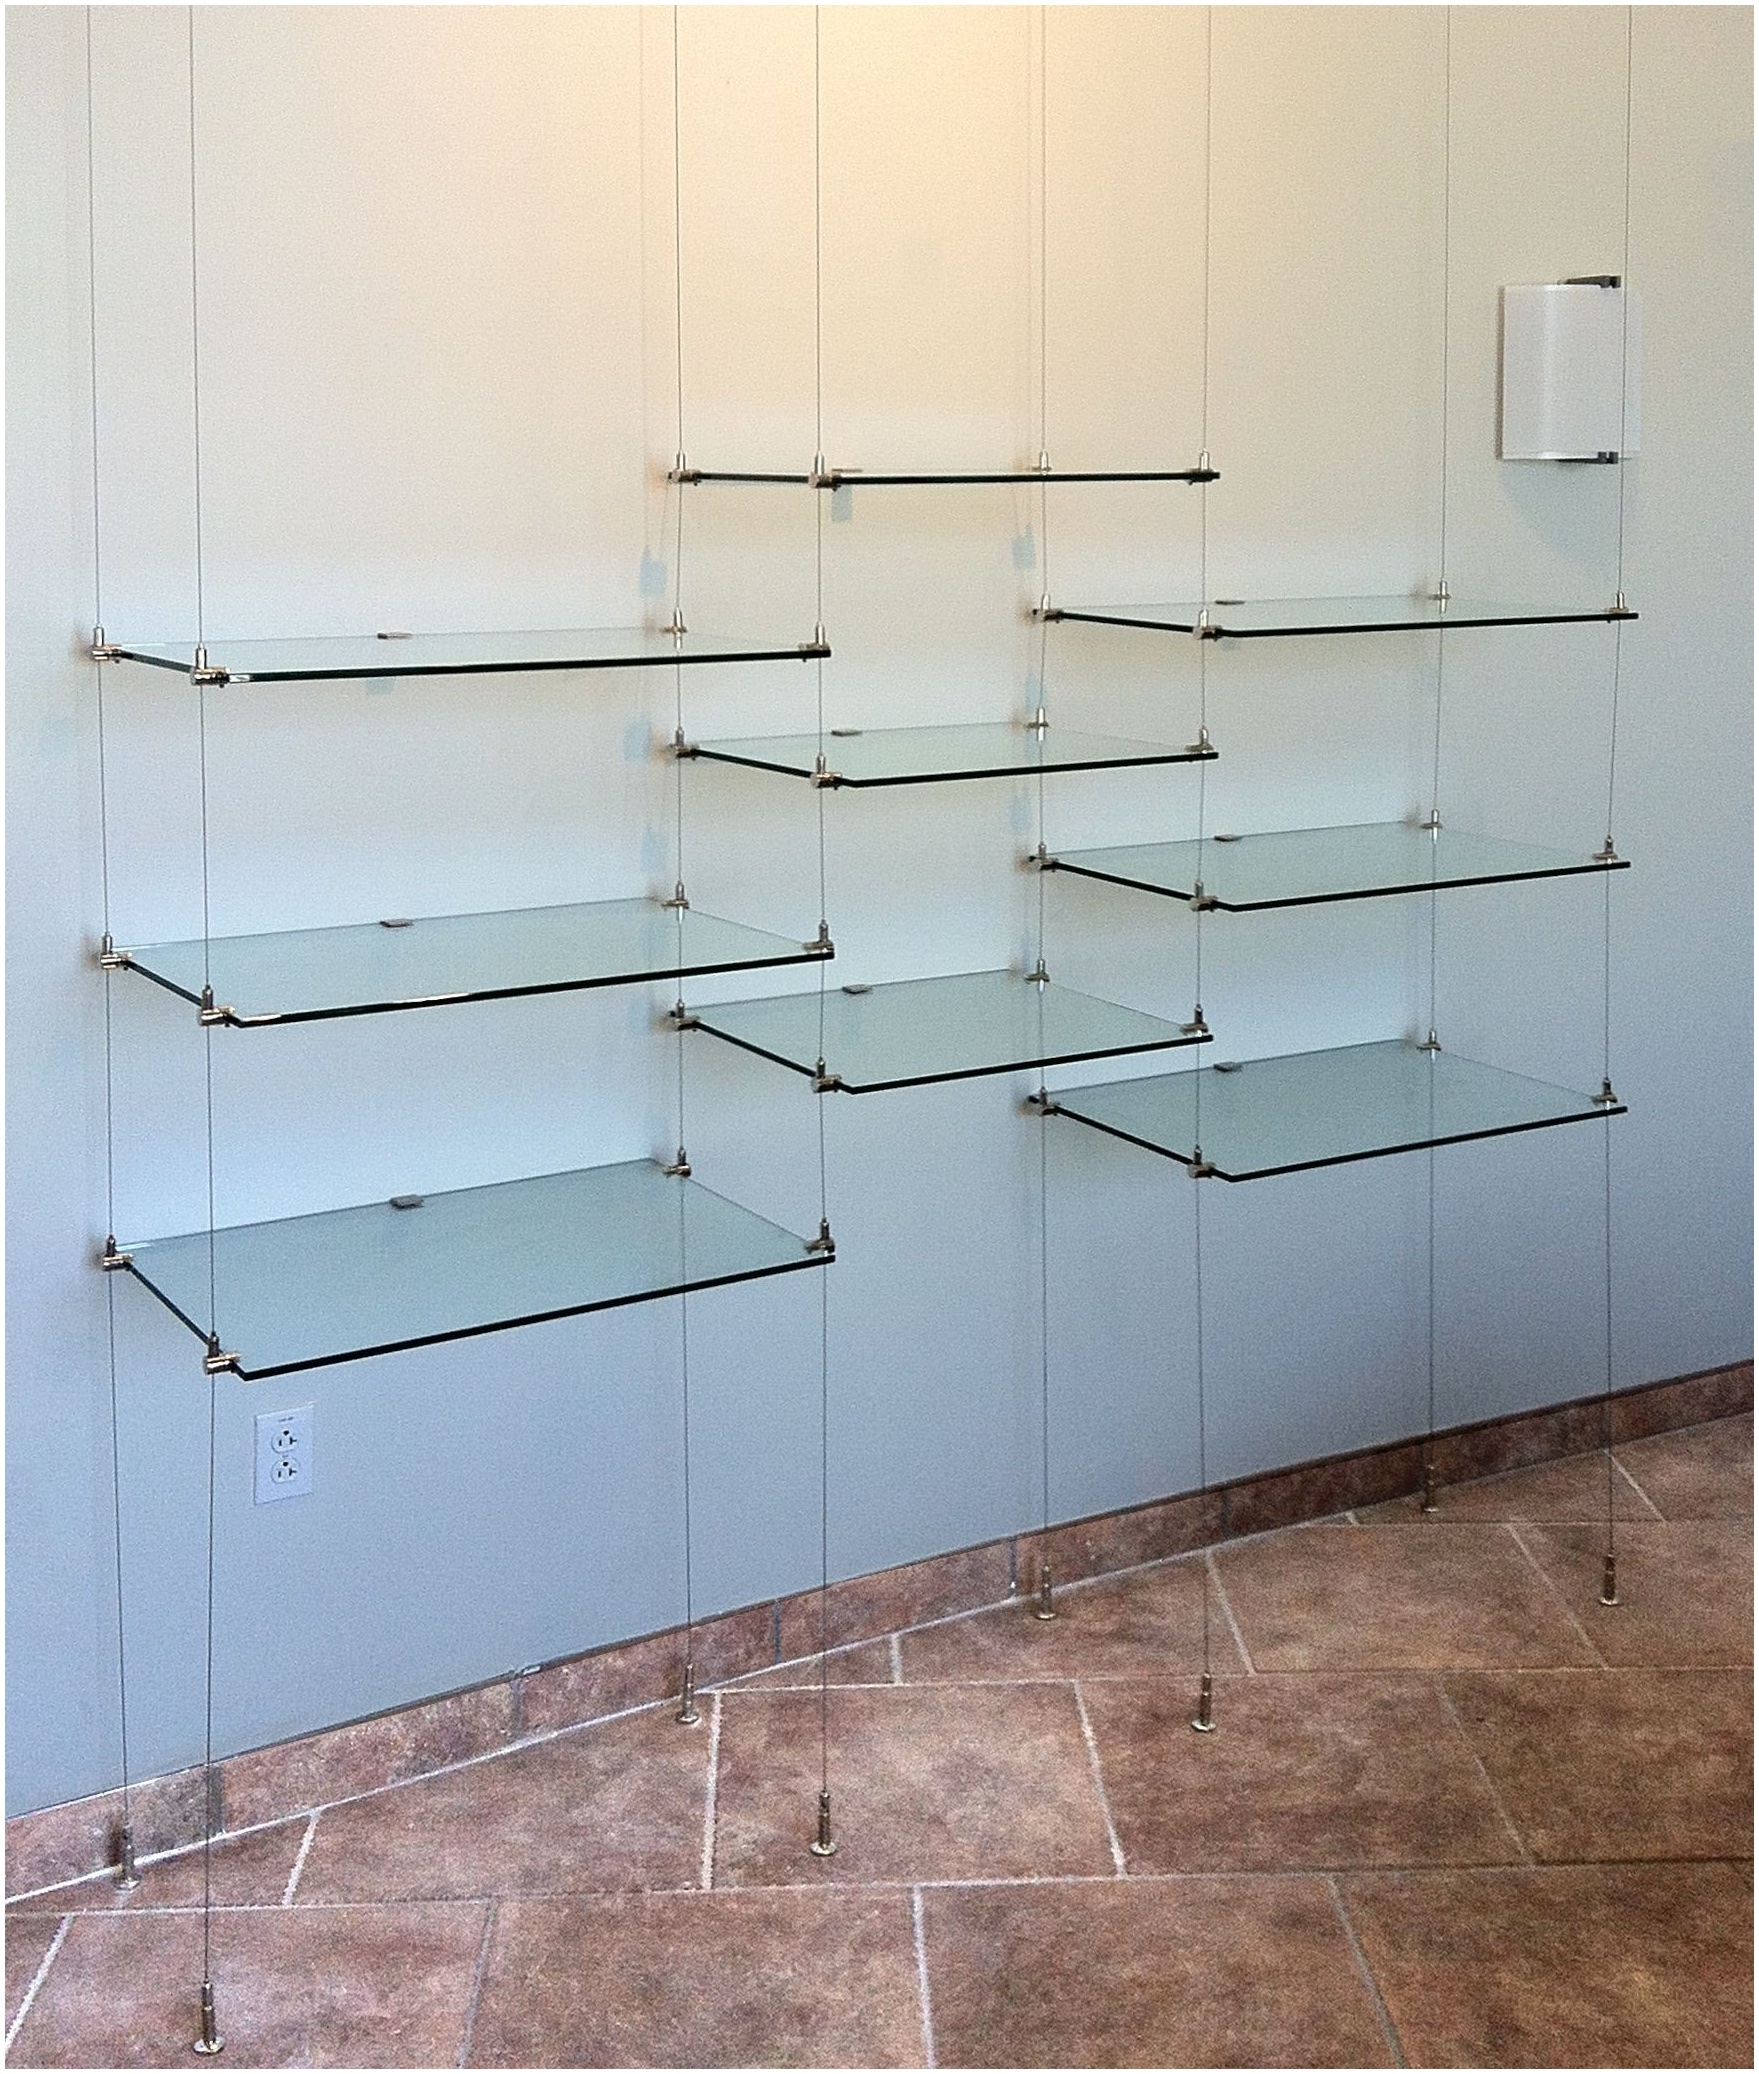 Suspended Glass Shelving Systems Design Modern Shelf Storage And With Regard To Cable Suspended Glass Shelving (#15 of 15)